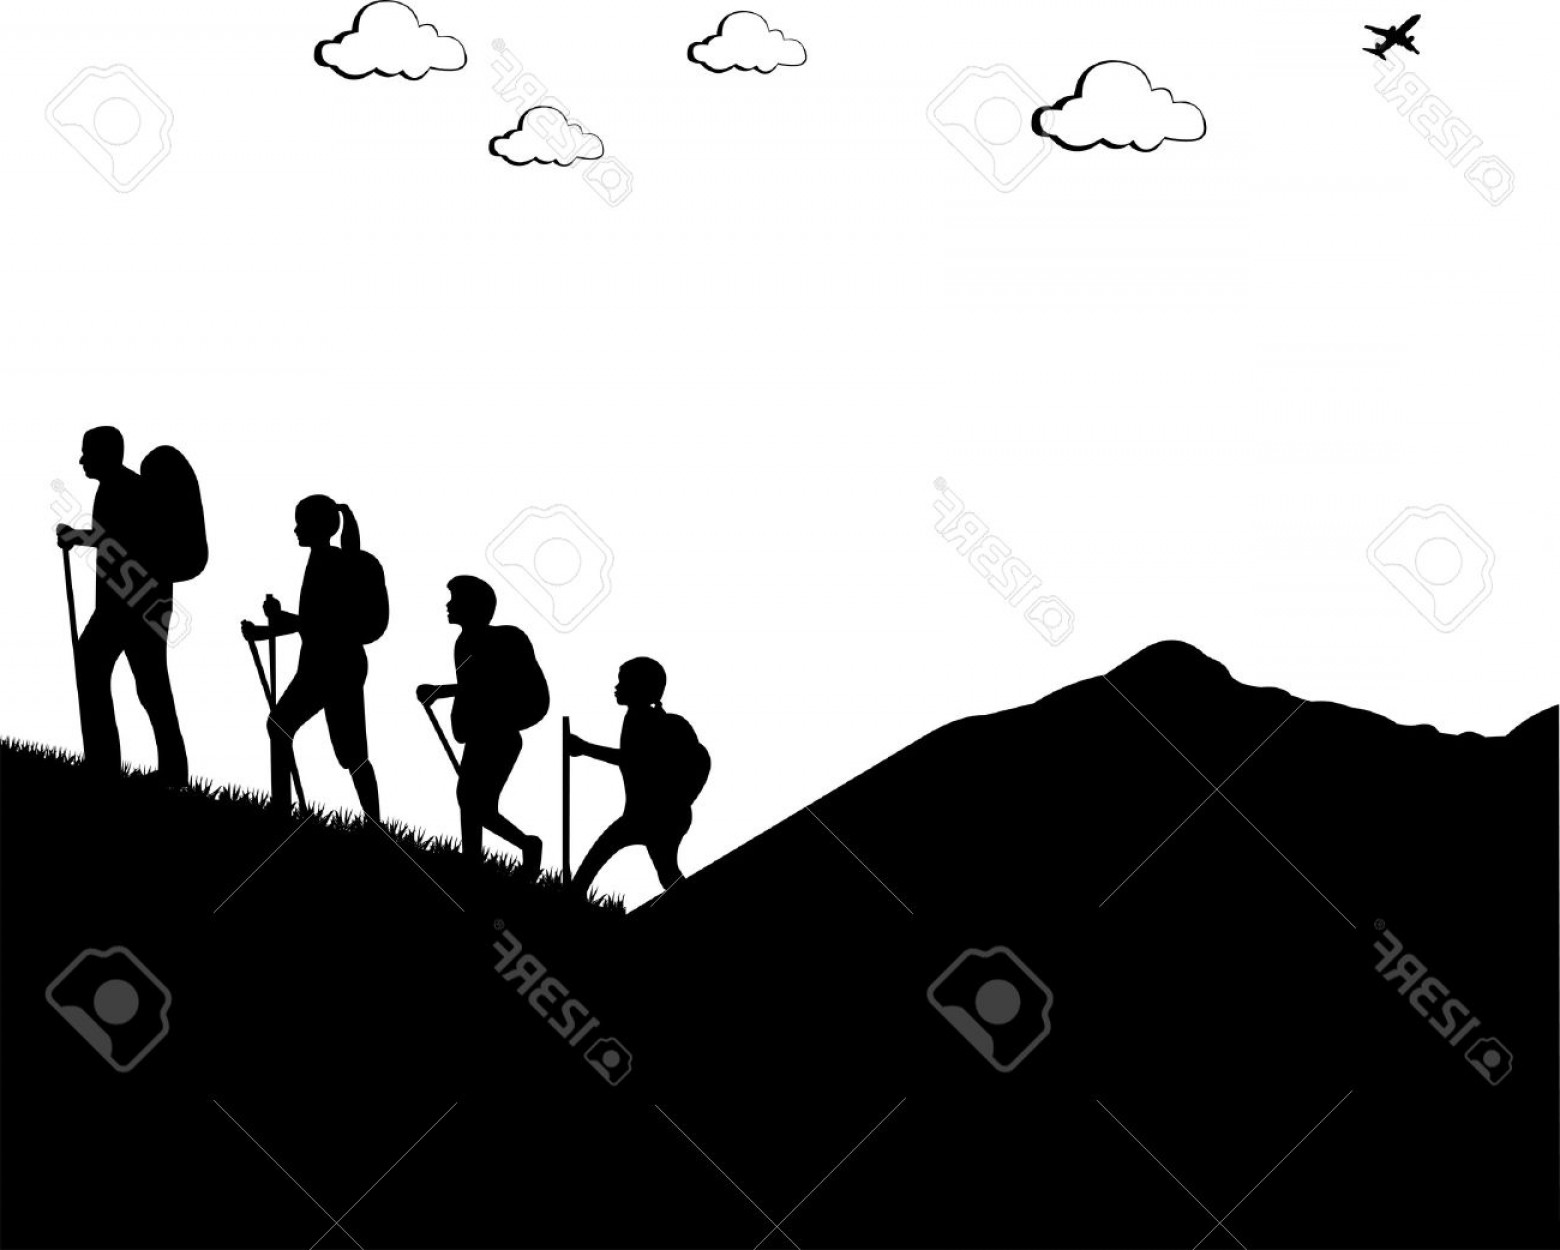 White Mountain Silhouette Vector Free: Photomountain Climbing Hiking Family With Rucksacks Silhouette One In The Series Of Similar Images